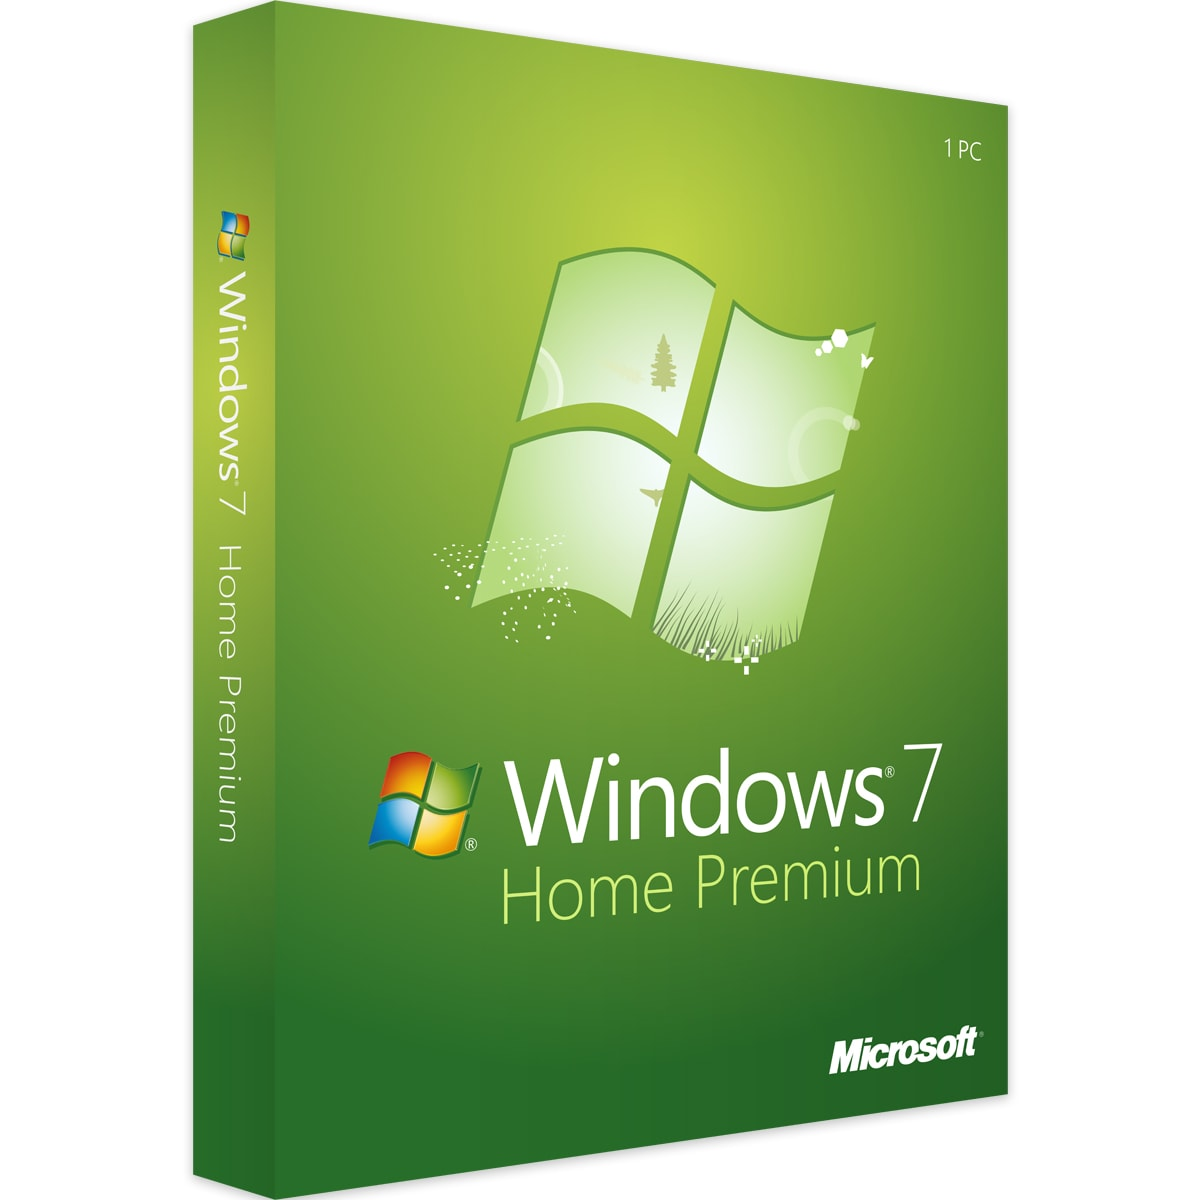 windows-7-home-premium-min